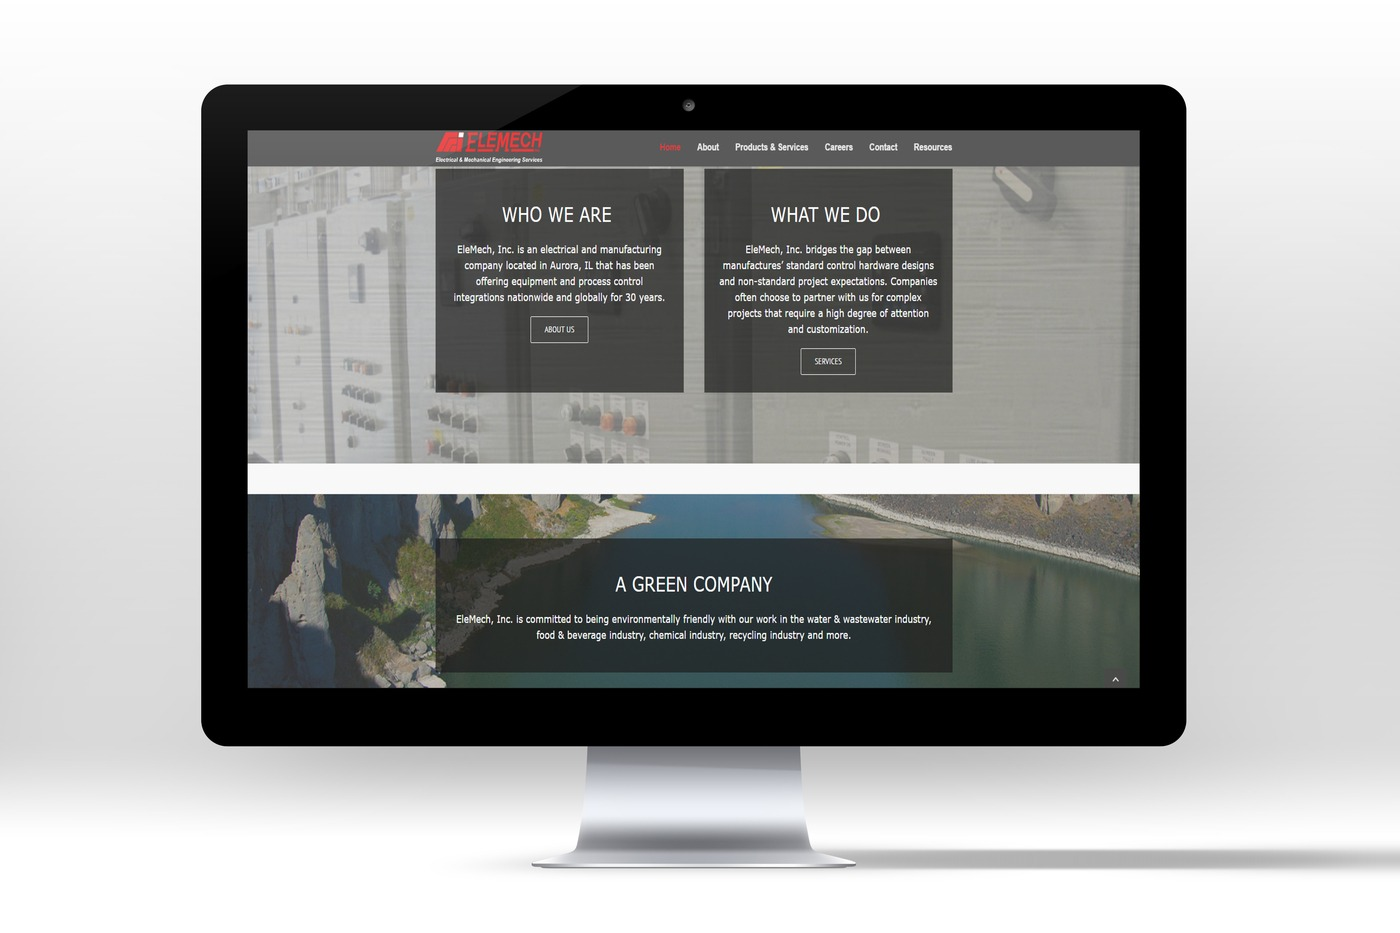 Website: Electrical & Manufacturing Company - Black Line Consulting